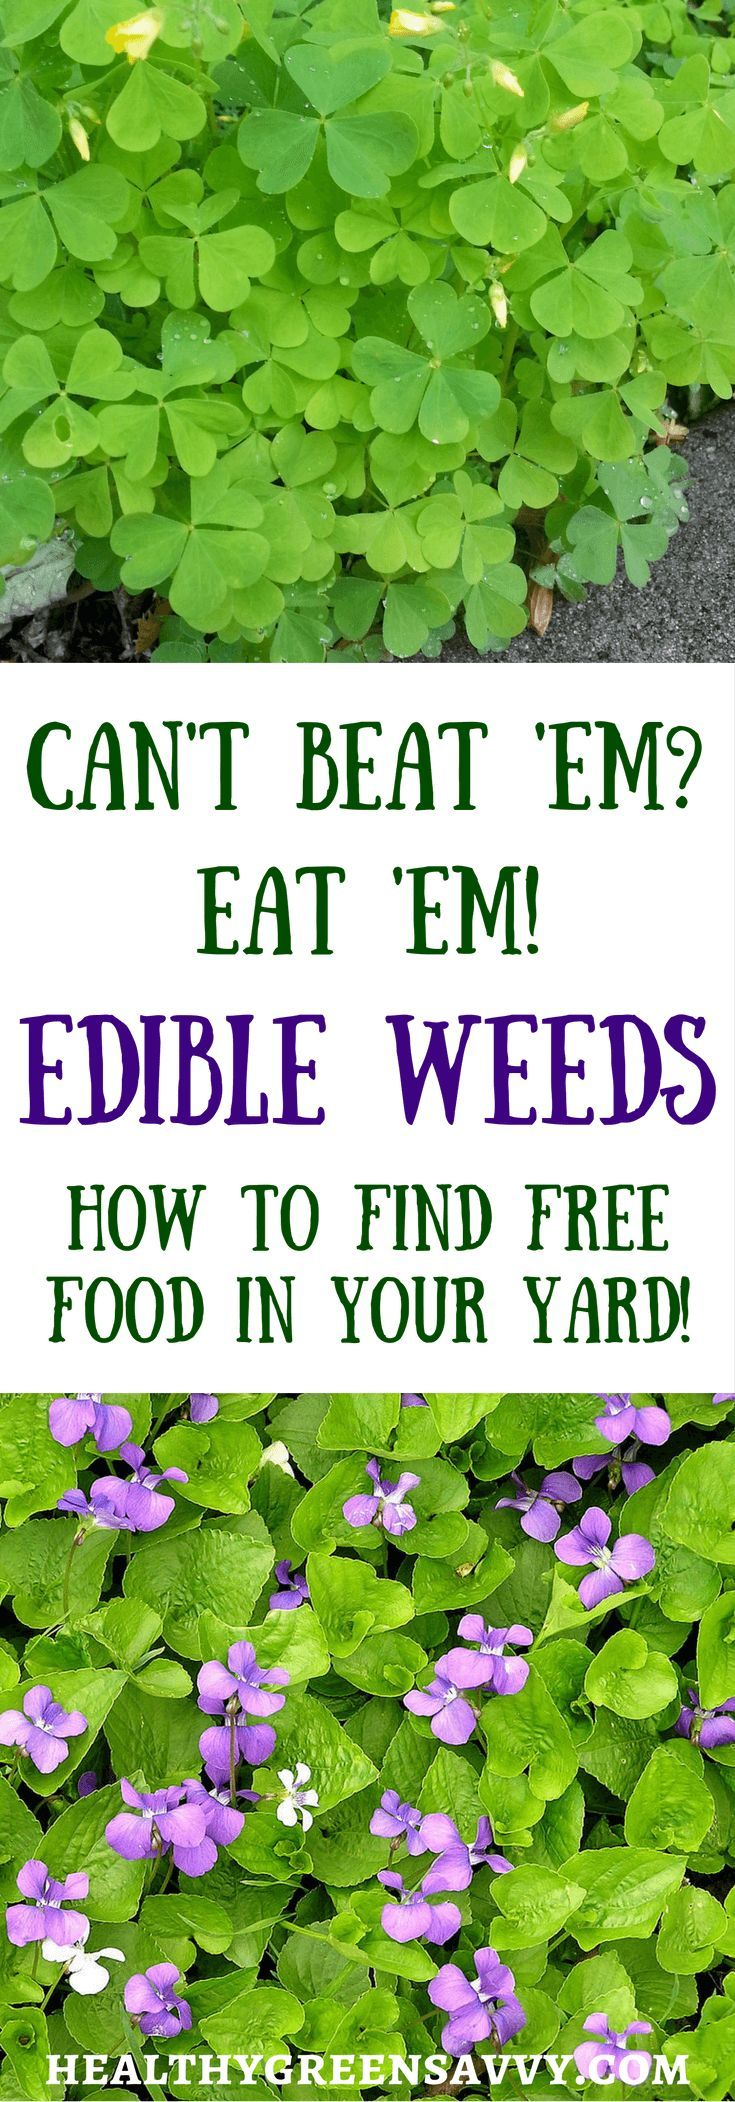 Is your yard overrun by dandelions? Purslane? Don't despair. Enjoy the free…